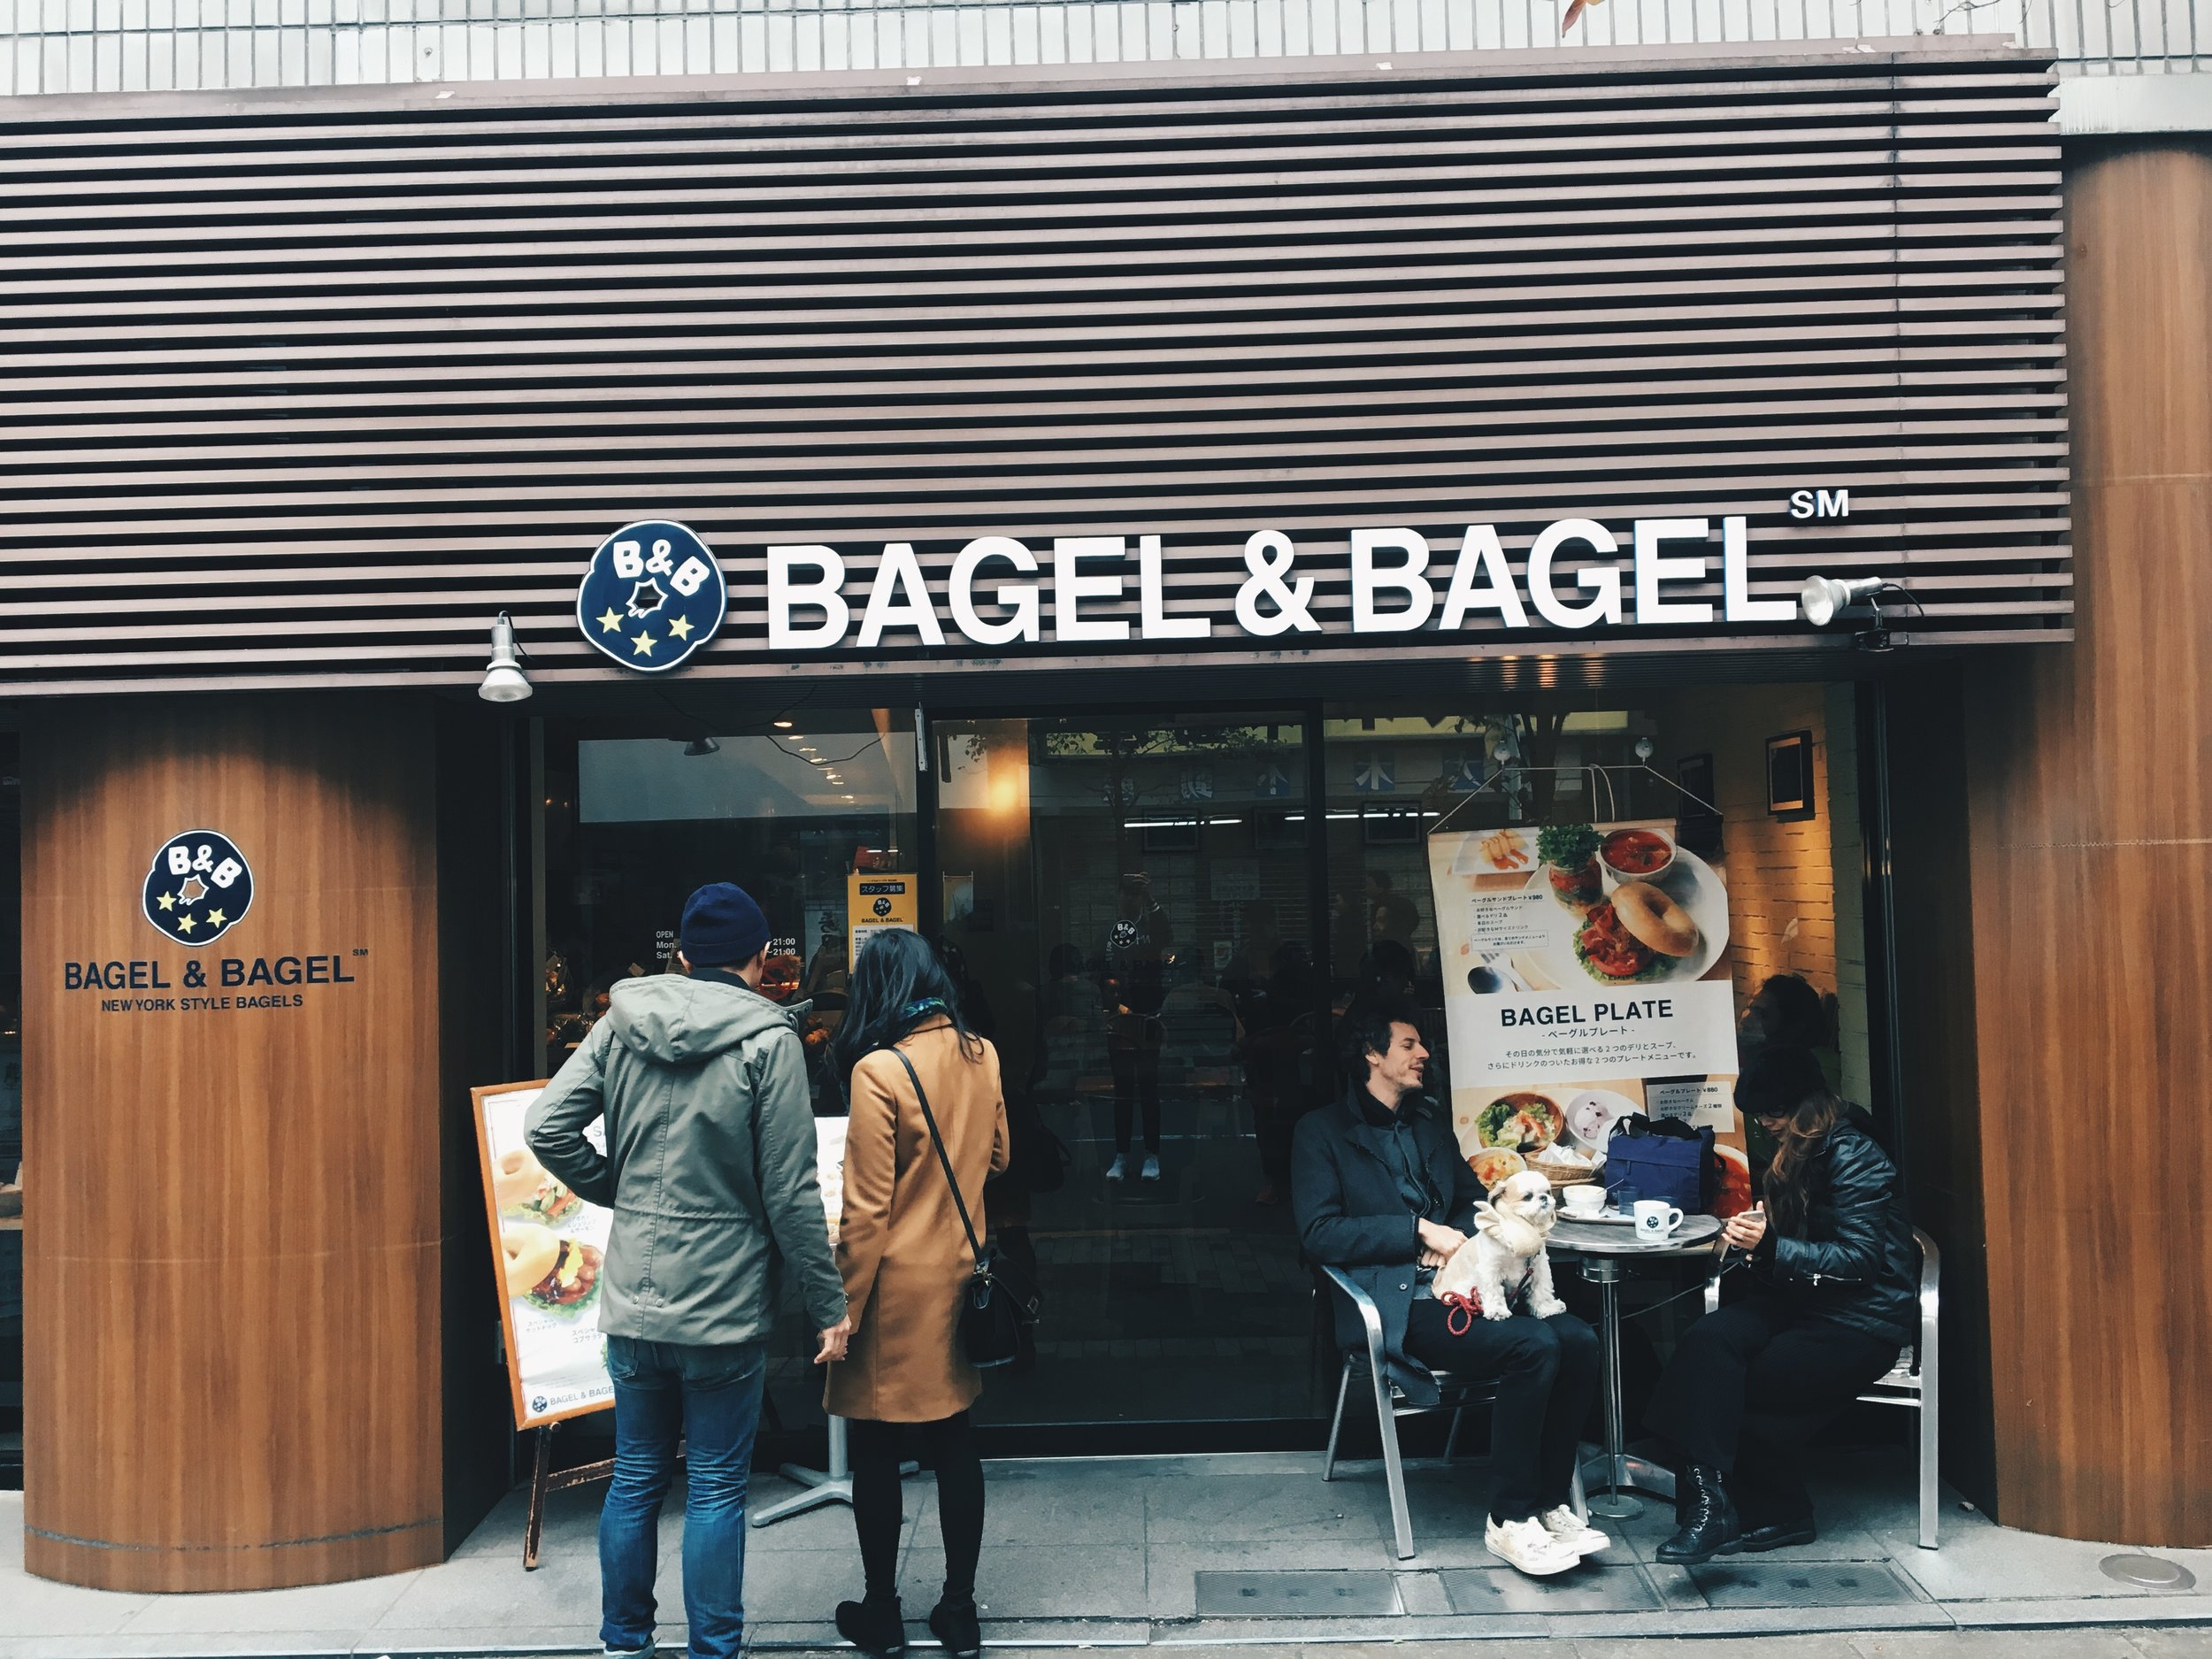 Bagel and bagel joint.